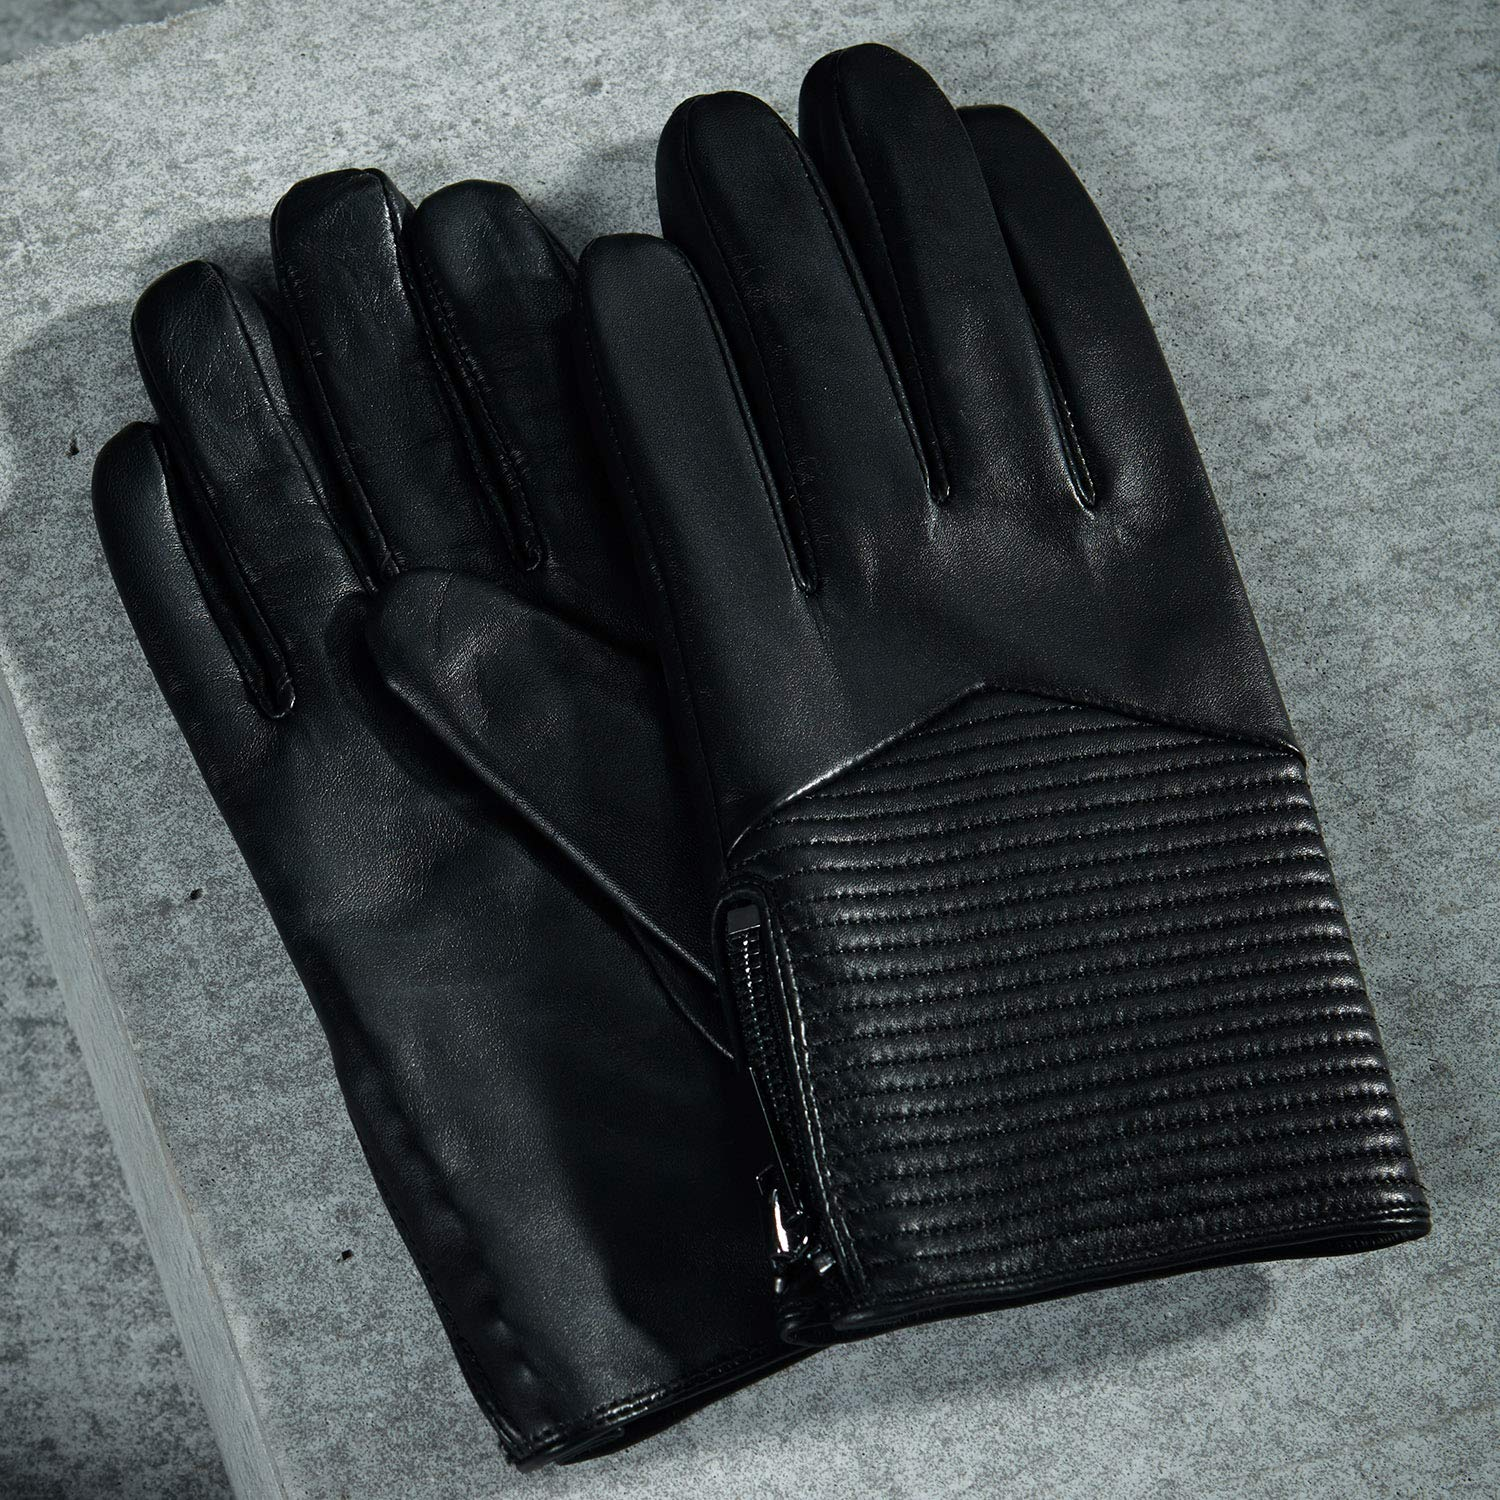 Fioretto Winter Gloves Men Warm Driving Leather Gloves Motorcycle Touchscreen Gloves Italian Nappa Cashmere Wool